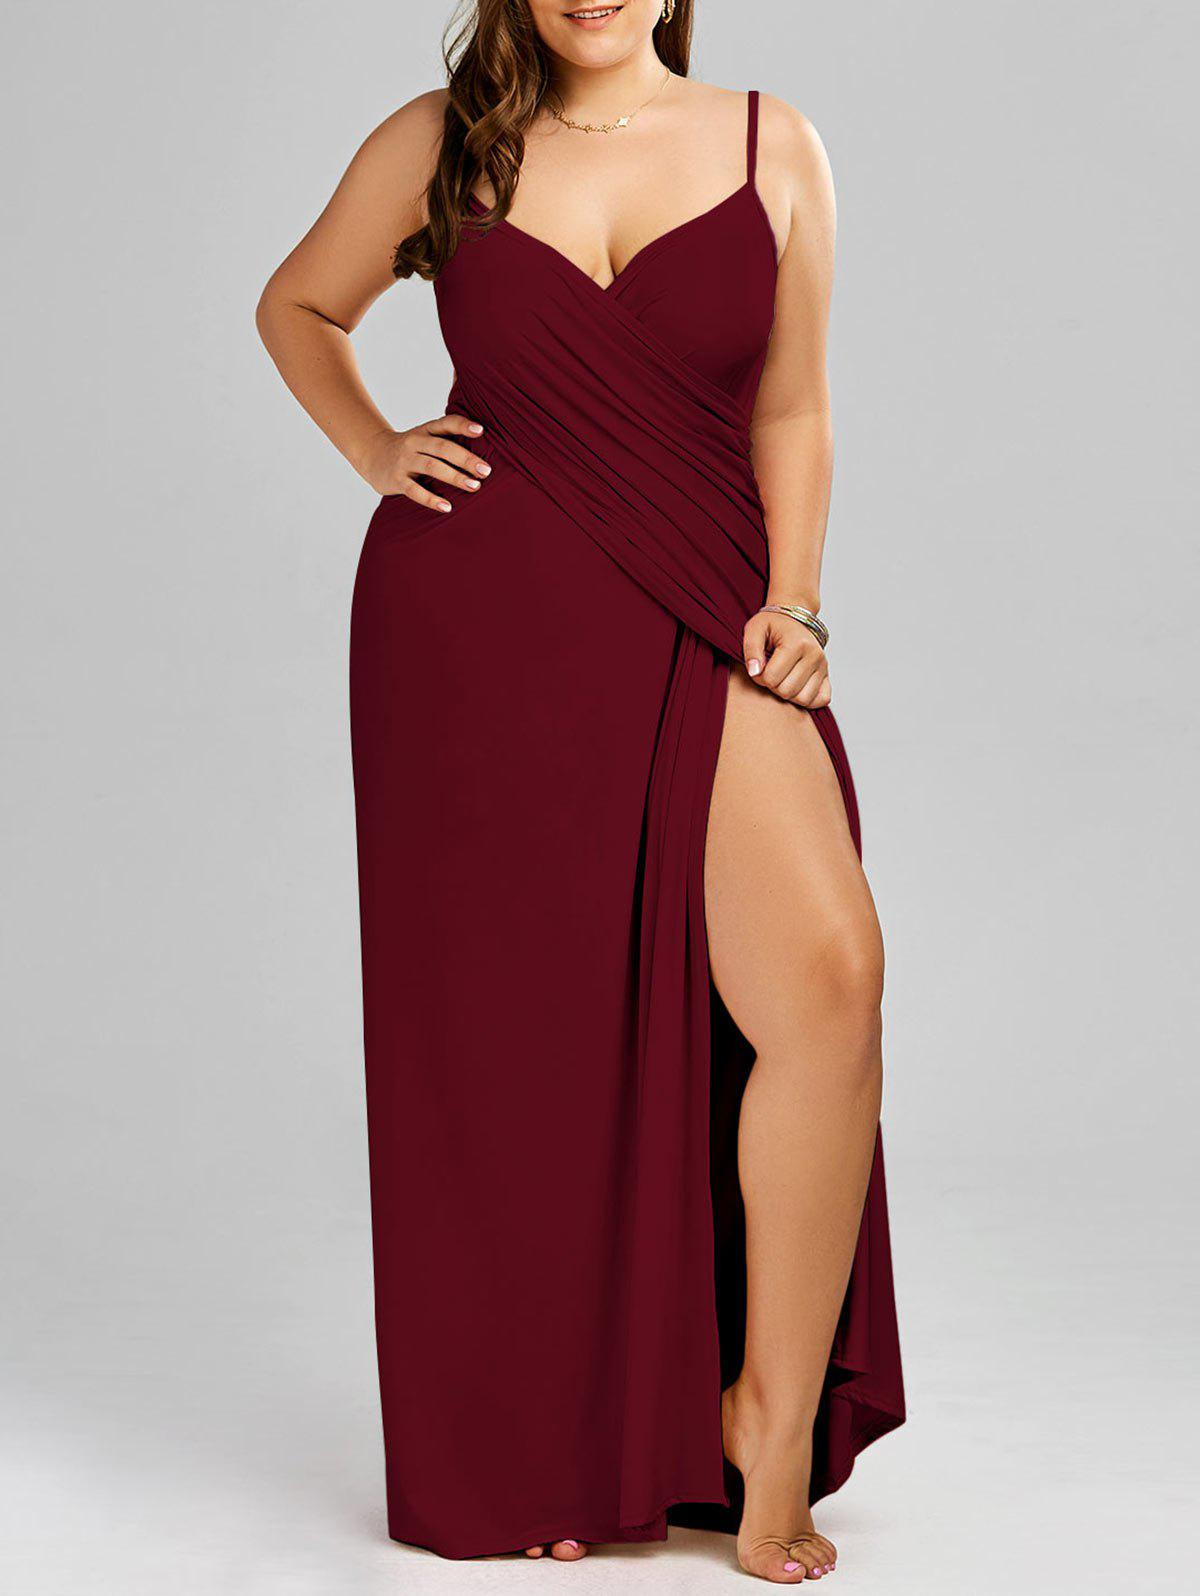 2018 Plus Size Maxi Flowy Beach Cover Up Wrap Dress Wine Red Xl In